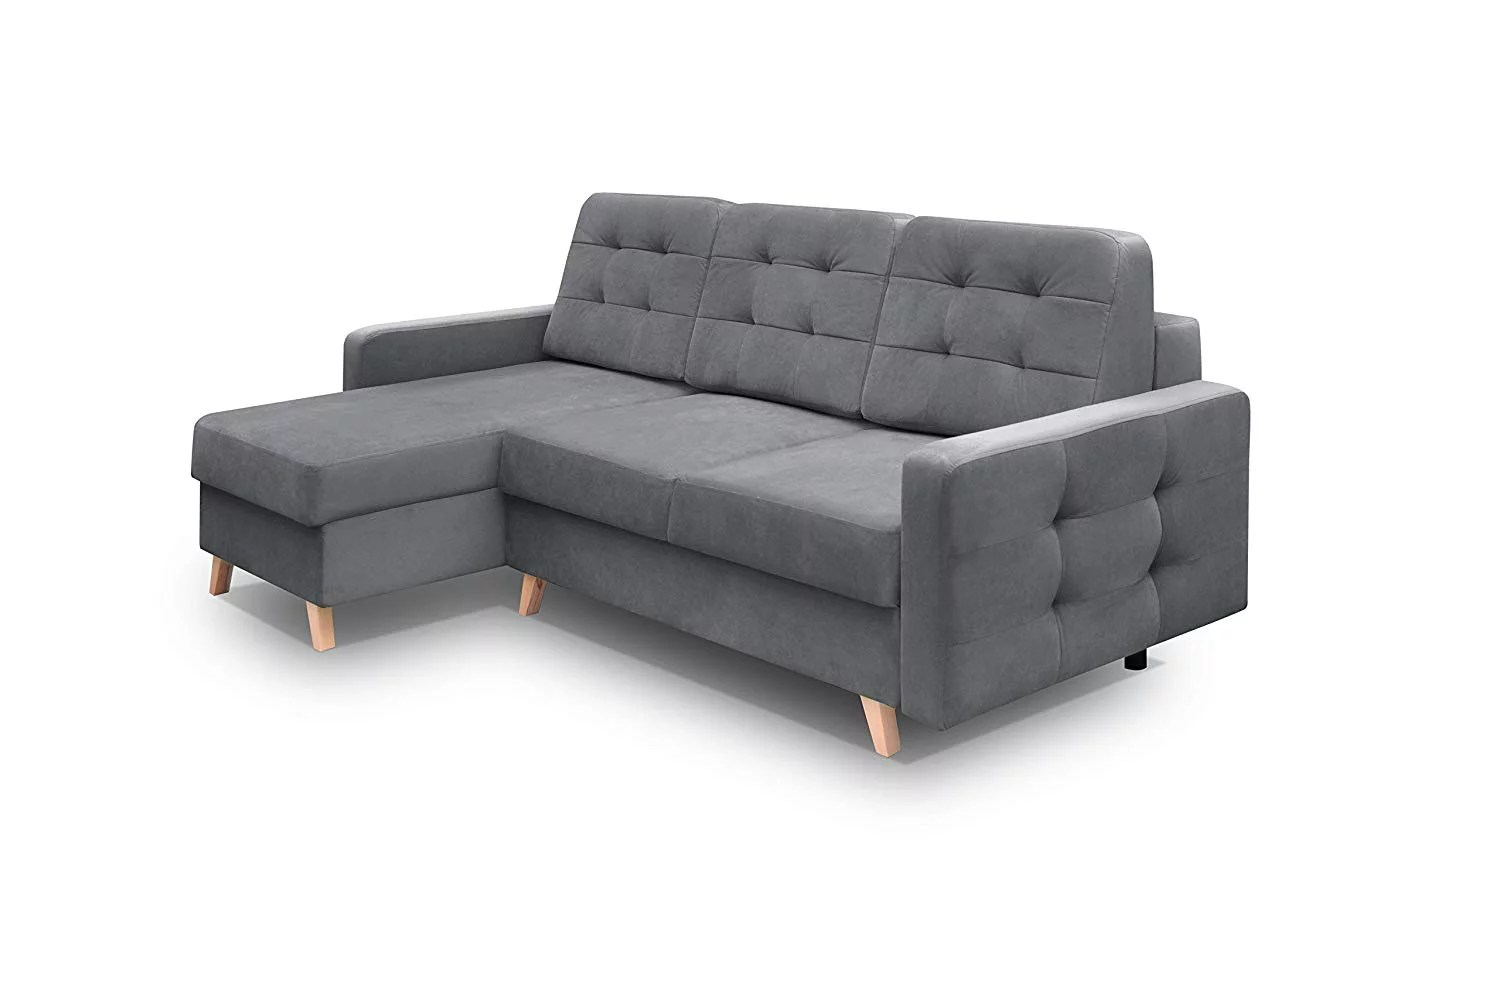 vegas futon sectional sofa bed queen sleeper with storage gray